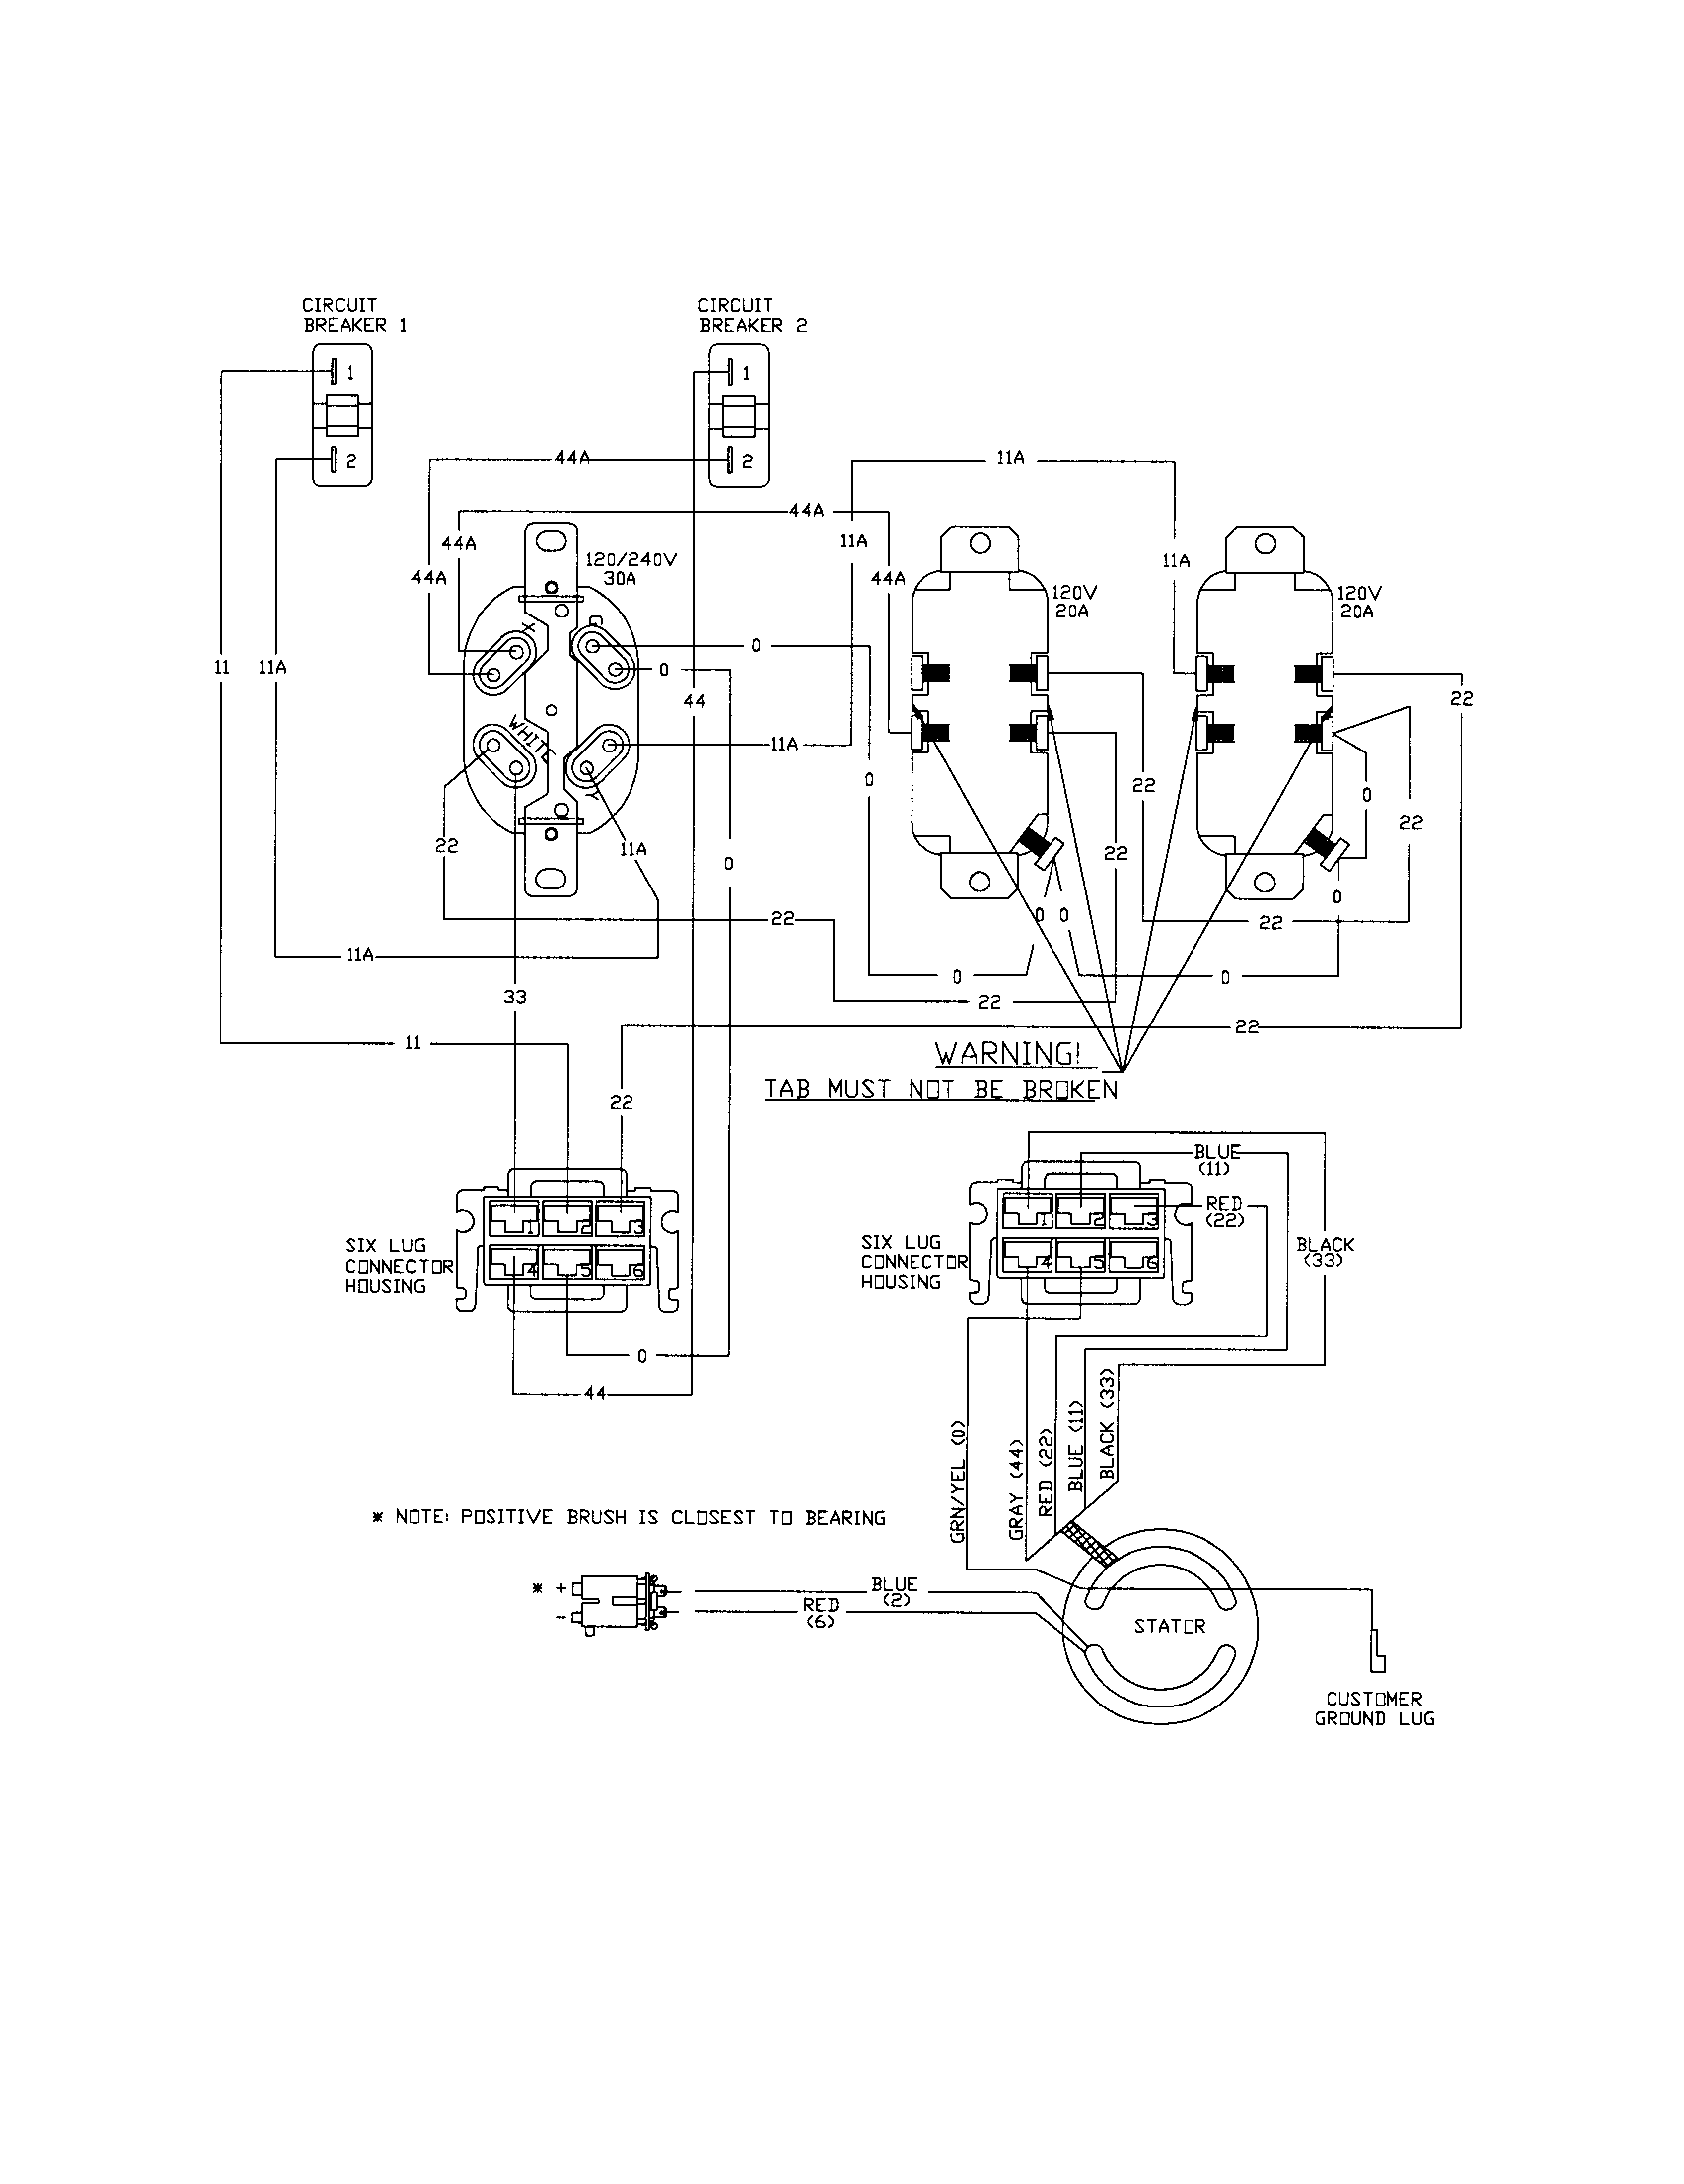 hight resolution of craftsman 580325600 wiring diagram diagram